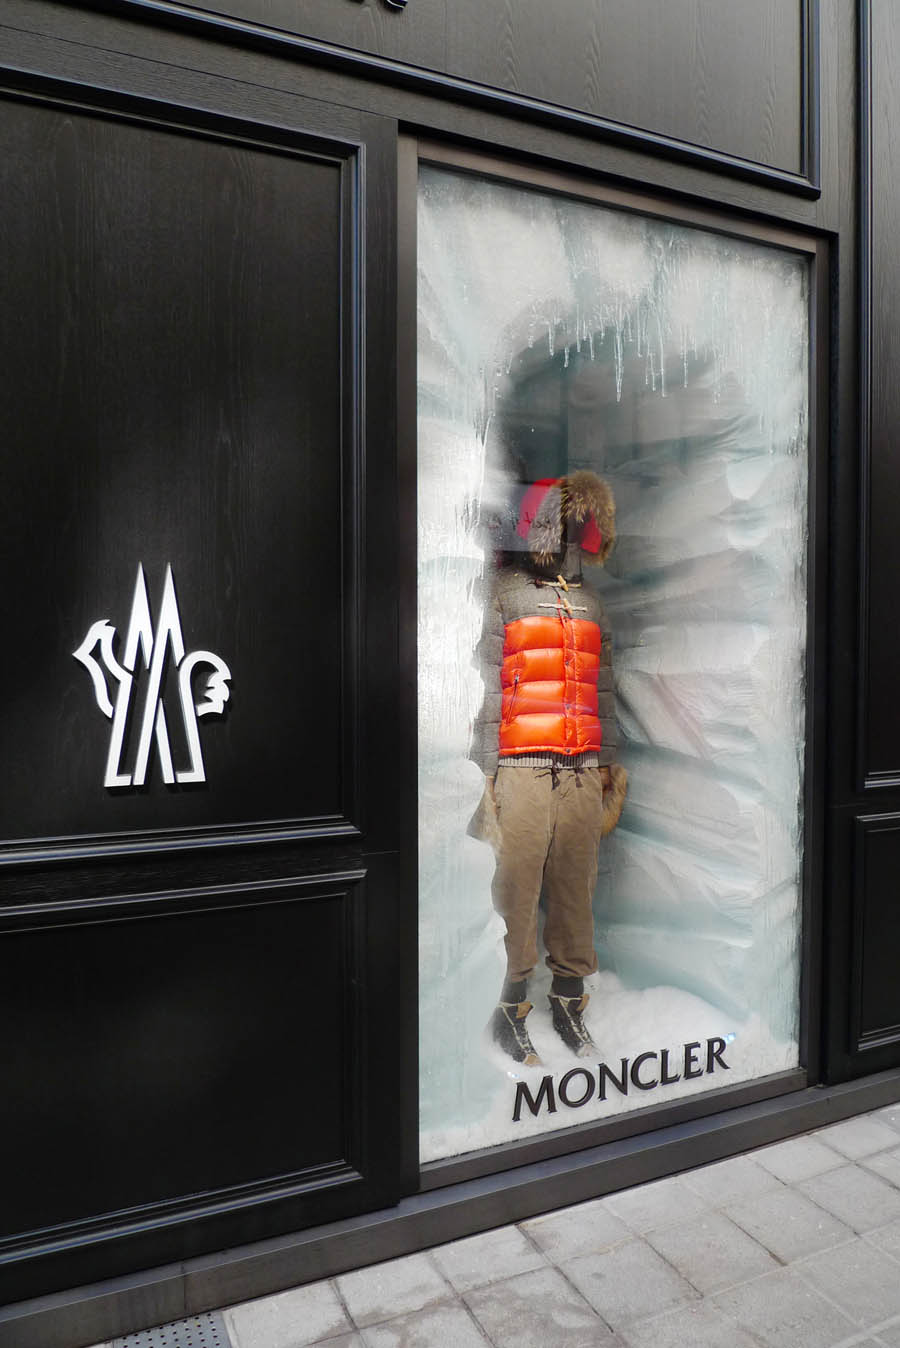 Moncler opens new boutique in vienna fashionwindows network for New window ideas